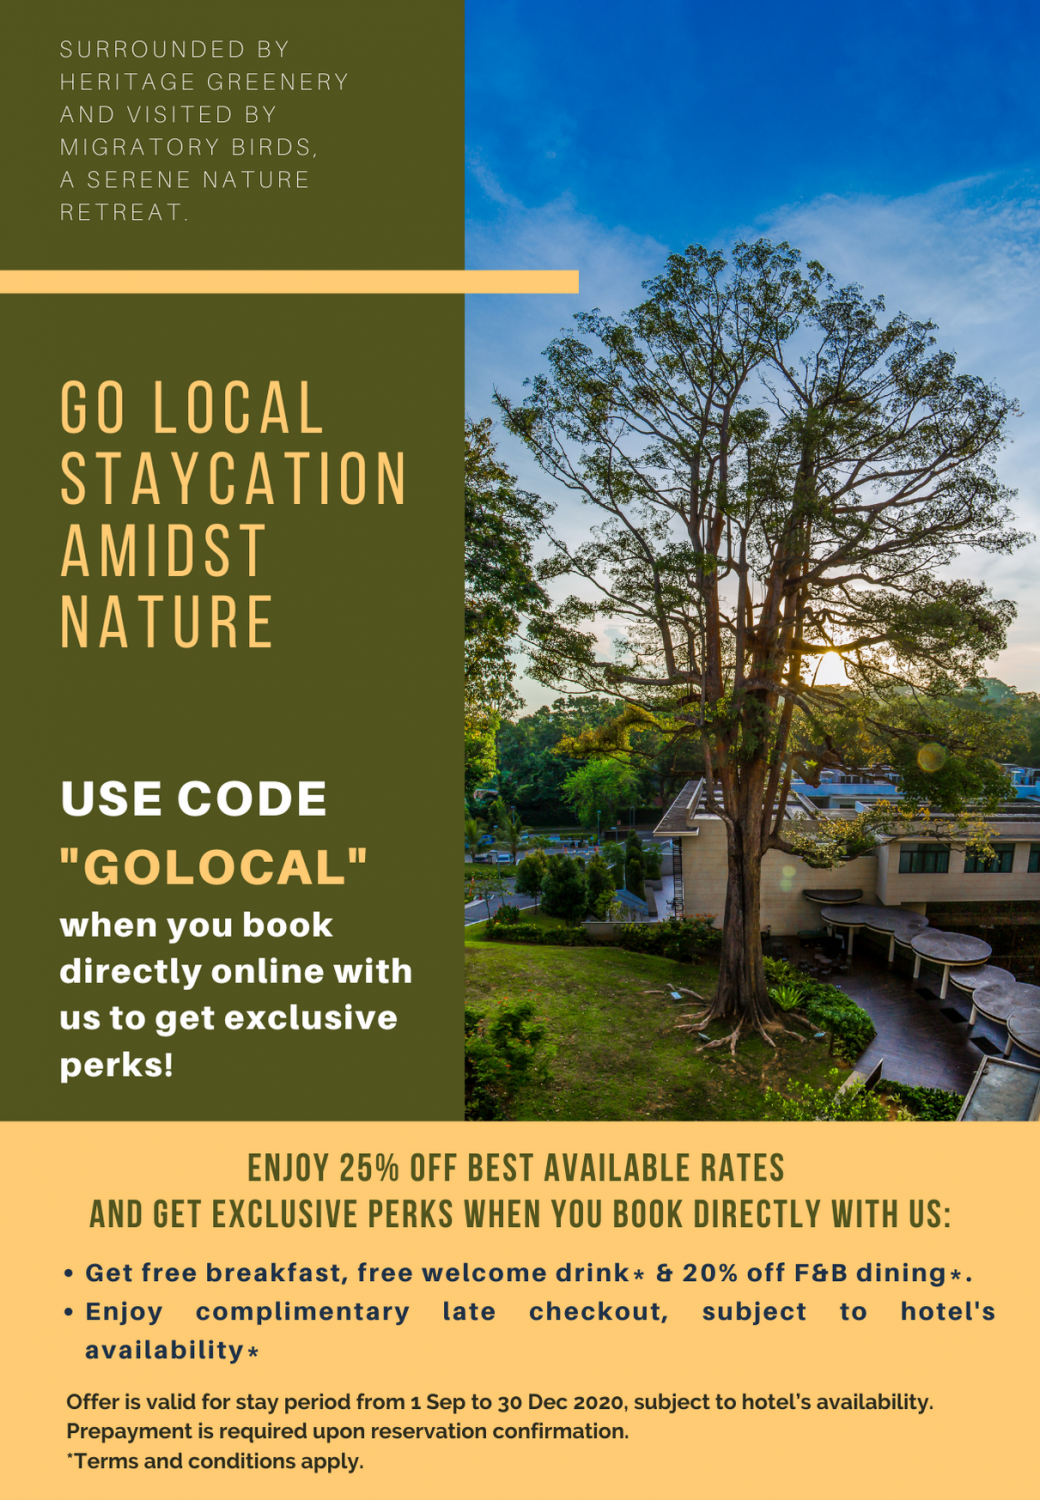 go-local-staycation-offer-2020-updated-as-of-4-sep-2020